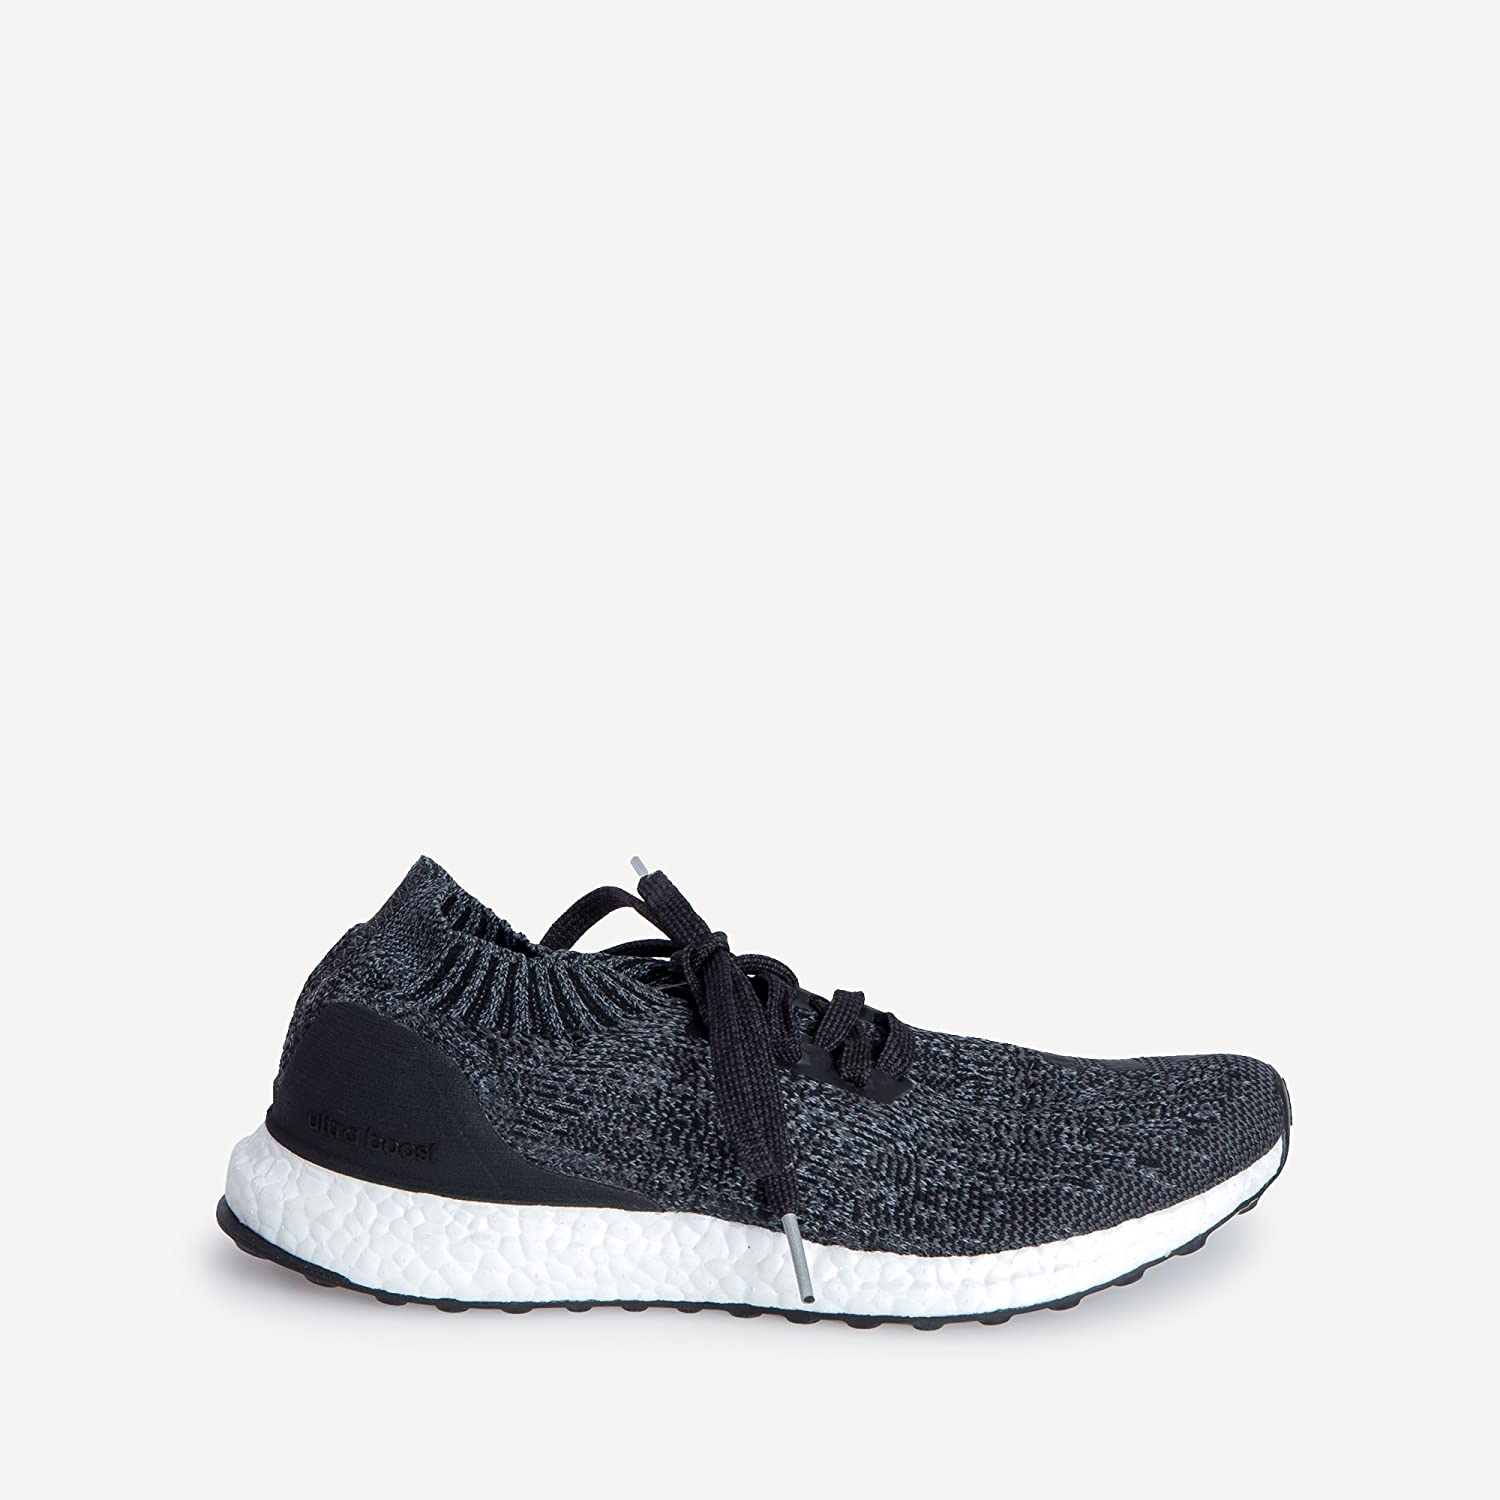 Adidas Para Mujer De Ultra Impulso Uncaged W rnemQBp